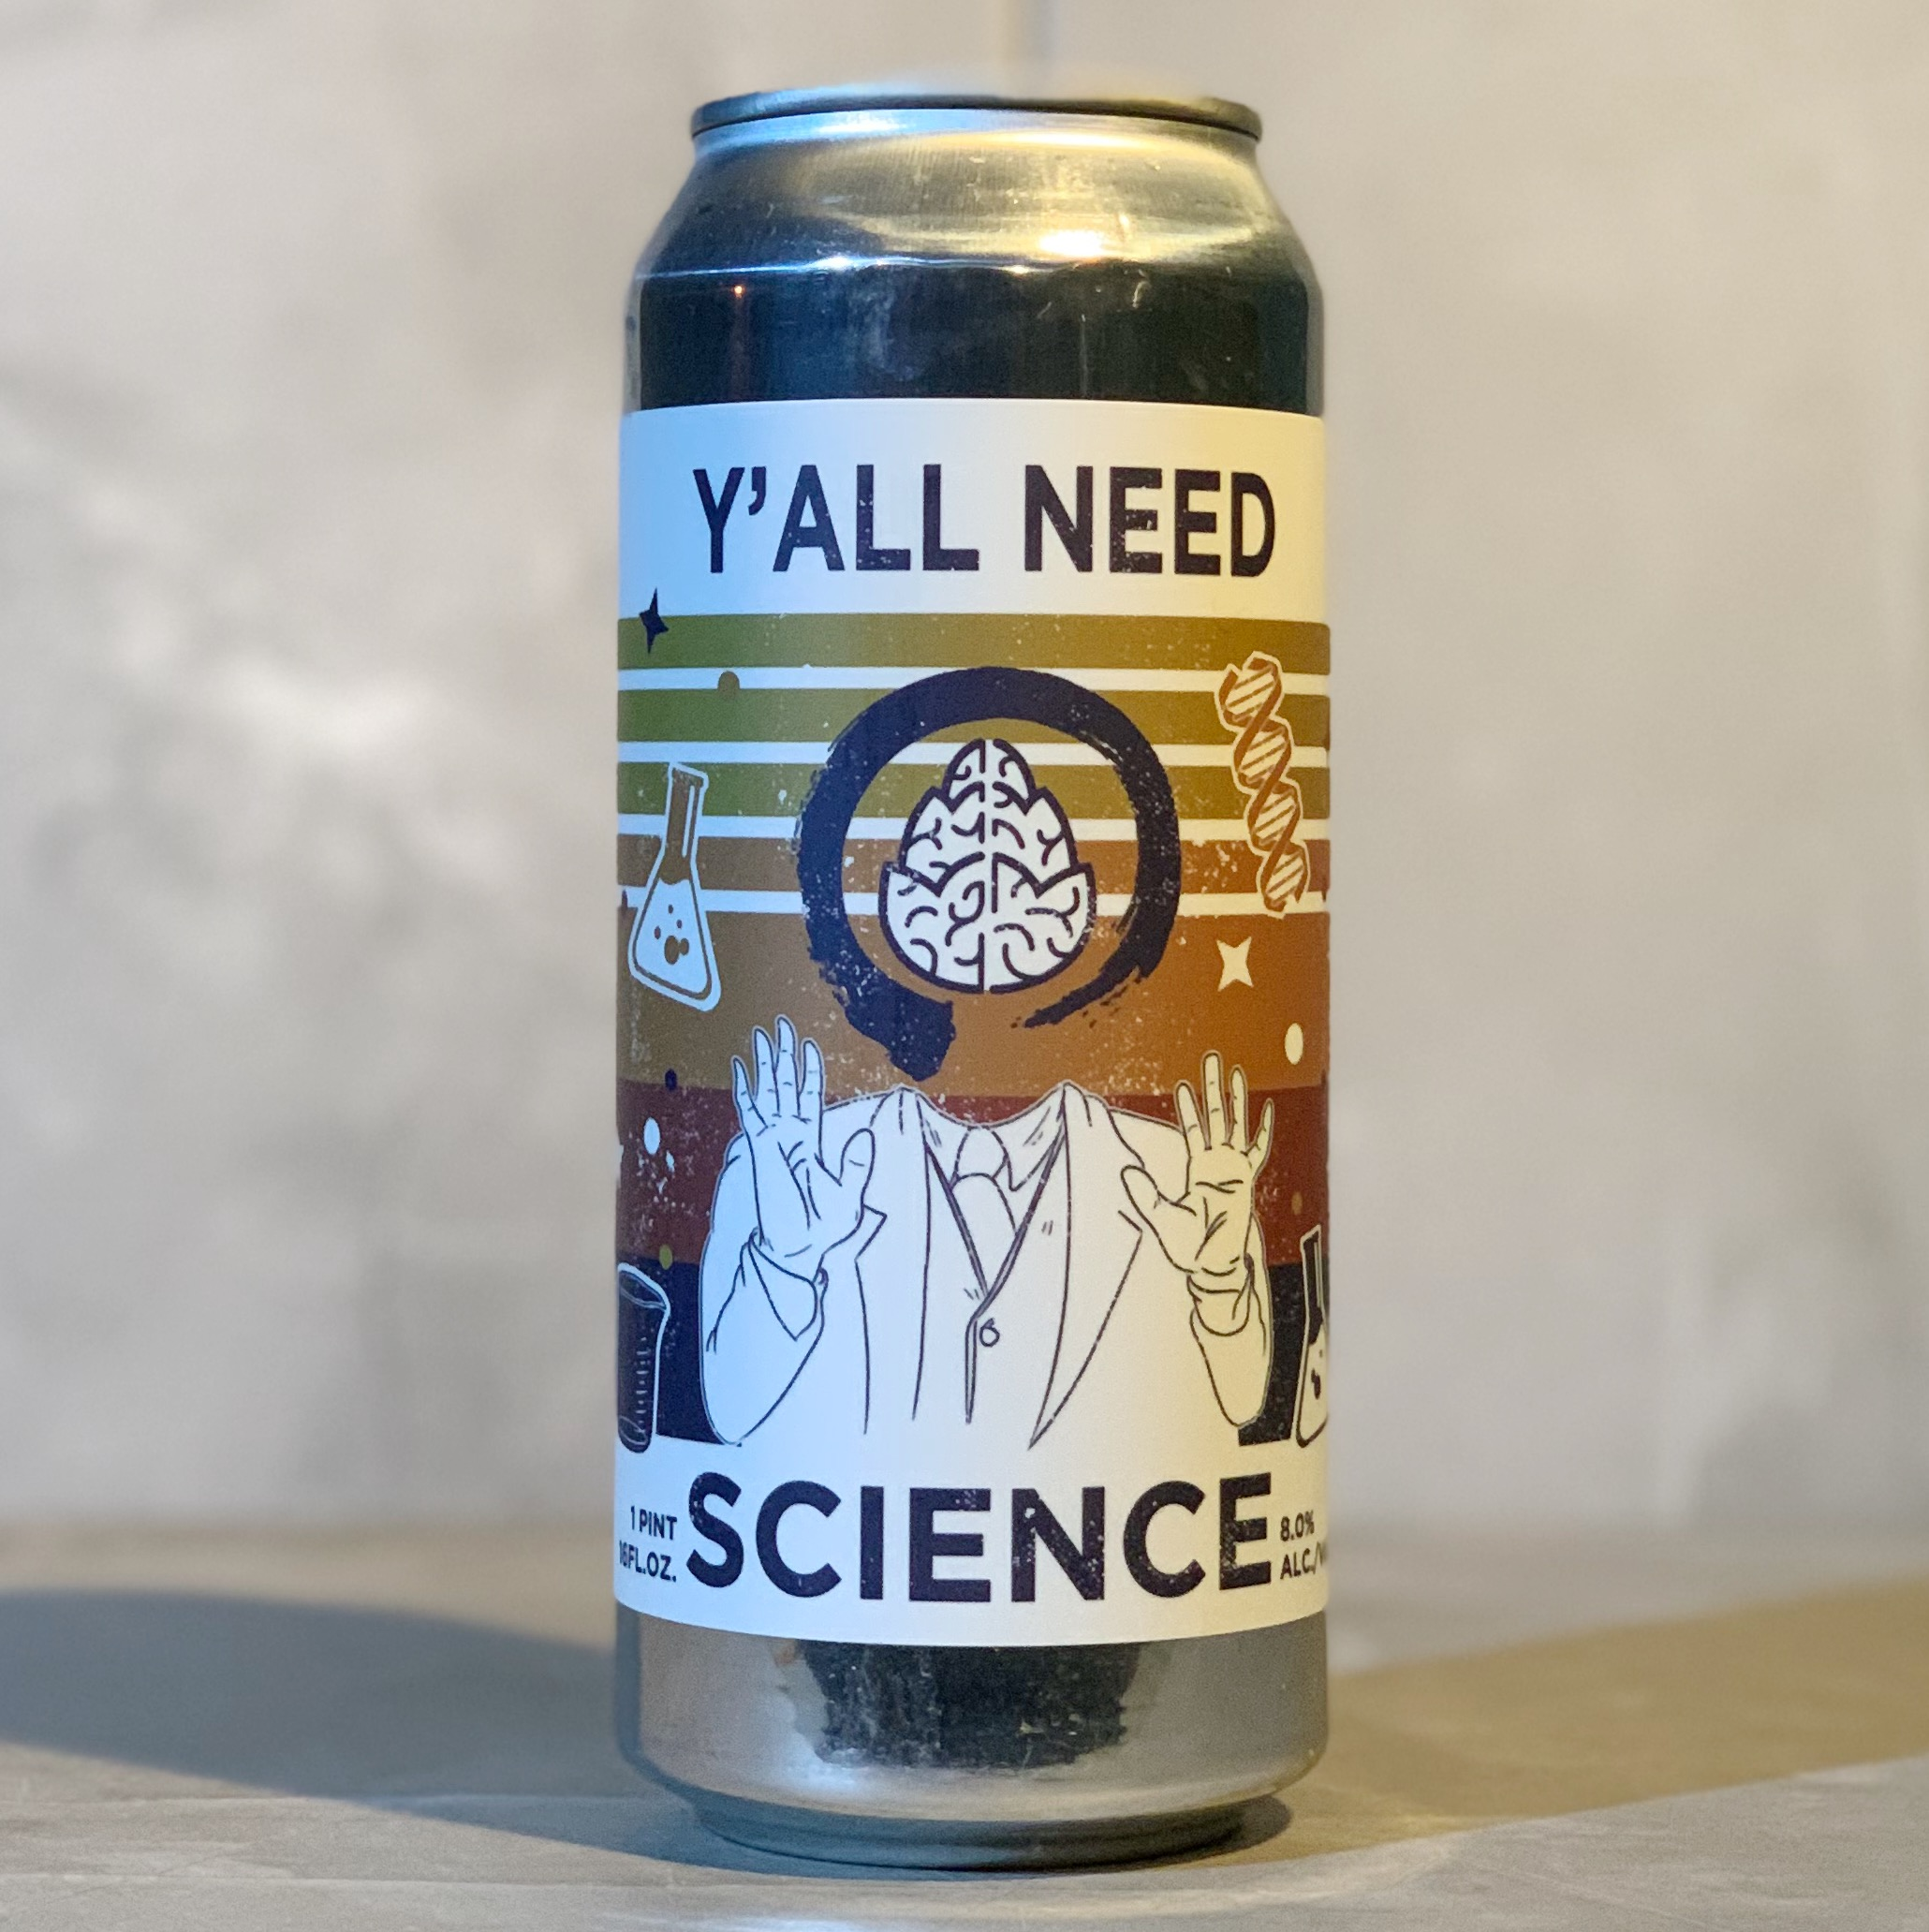 [ USA IMPORT ] EQUILLIBRIUM X CEREBRAL | YA'LL NEED SCIENCE | DIPA | 8.0% ABV | 473 ML